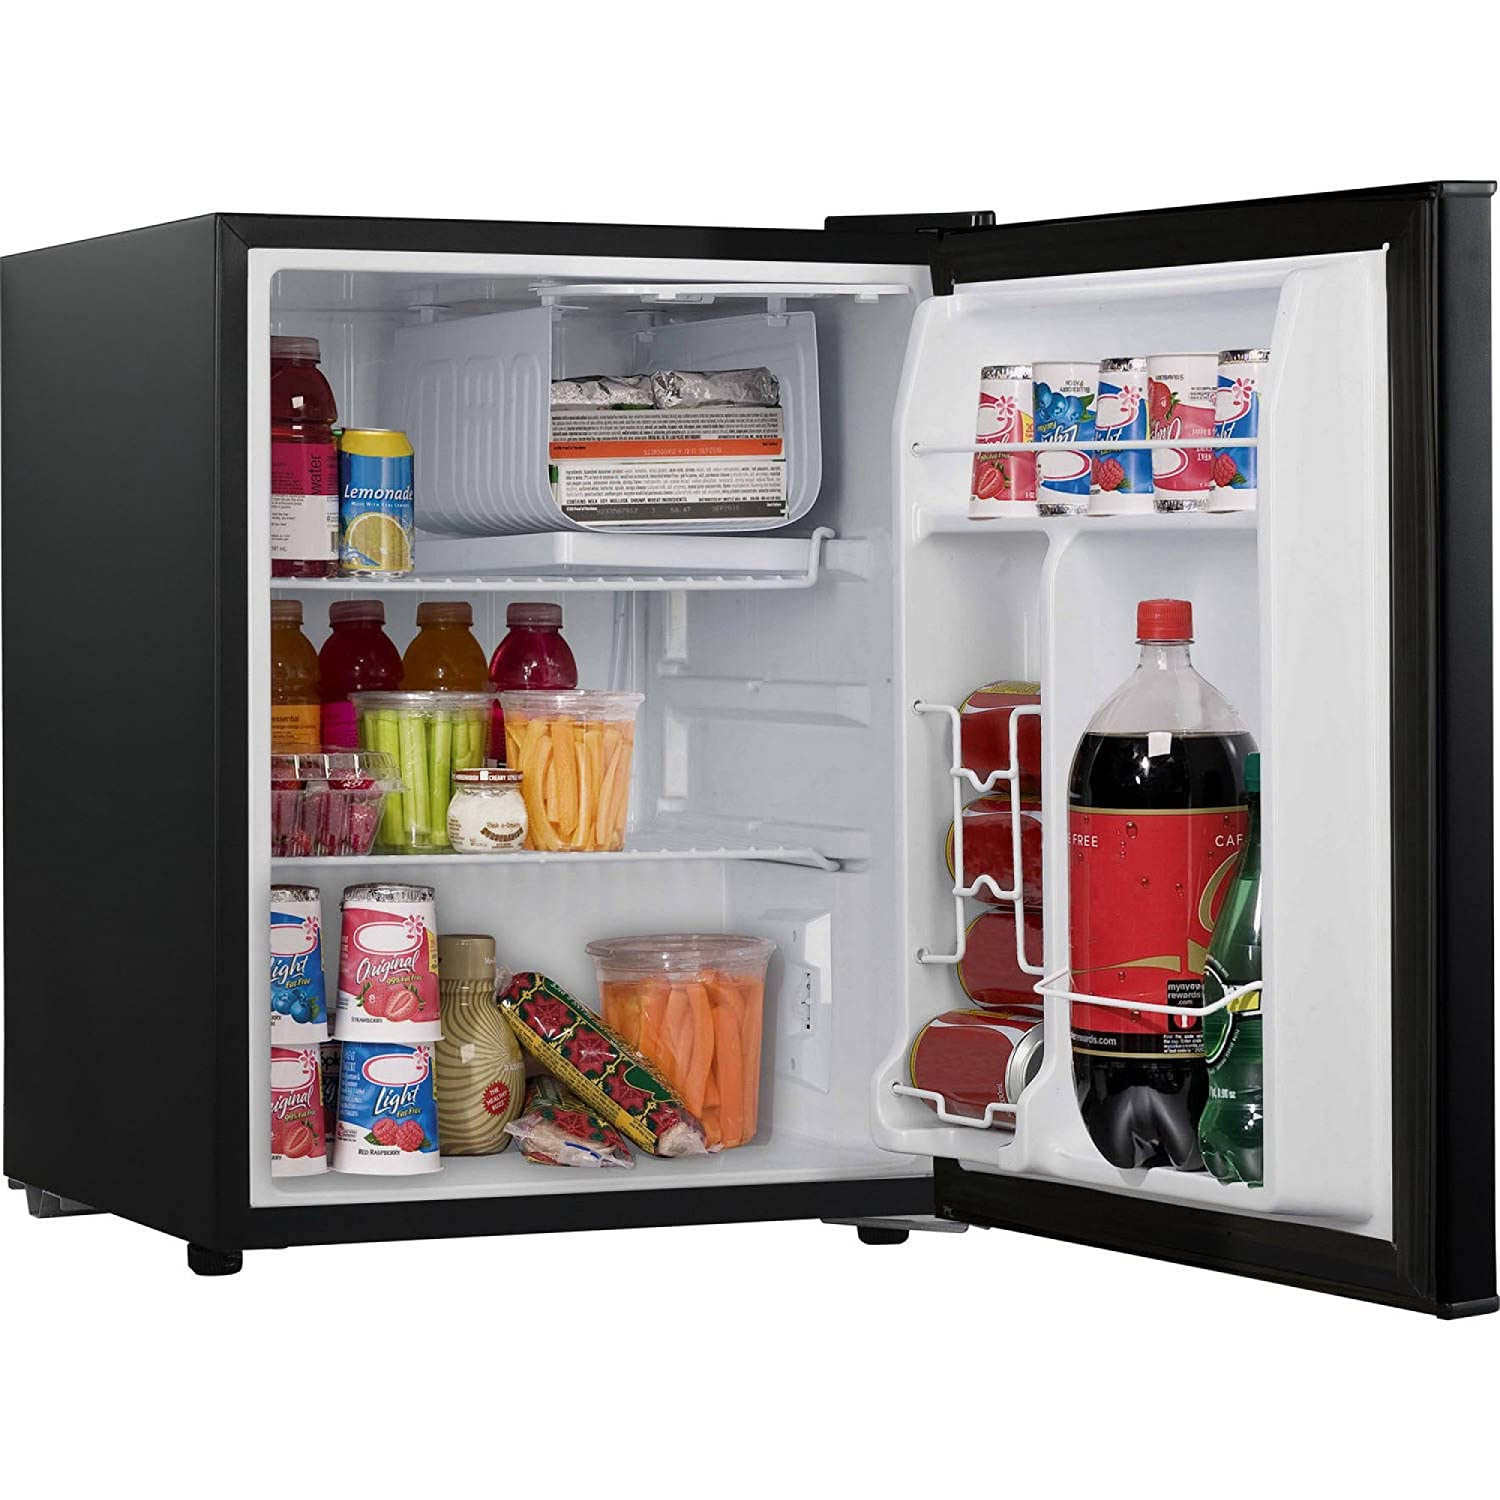 Amazoncom Galanz 27 Cu Ft Reversible Single Door Refrigerator, Black